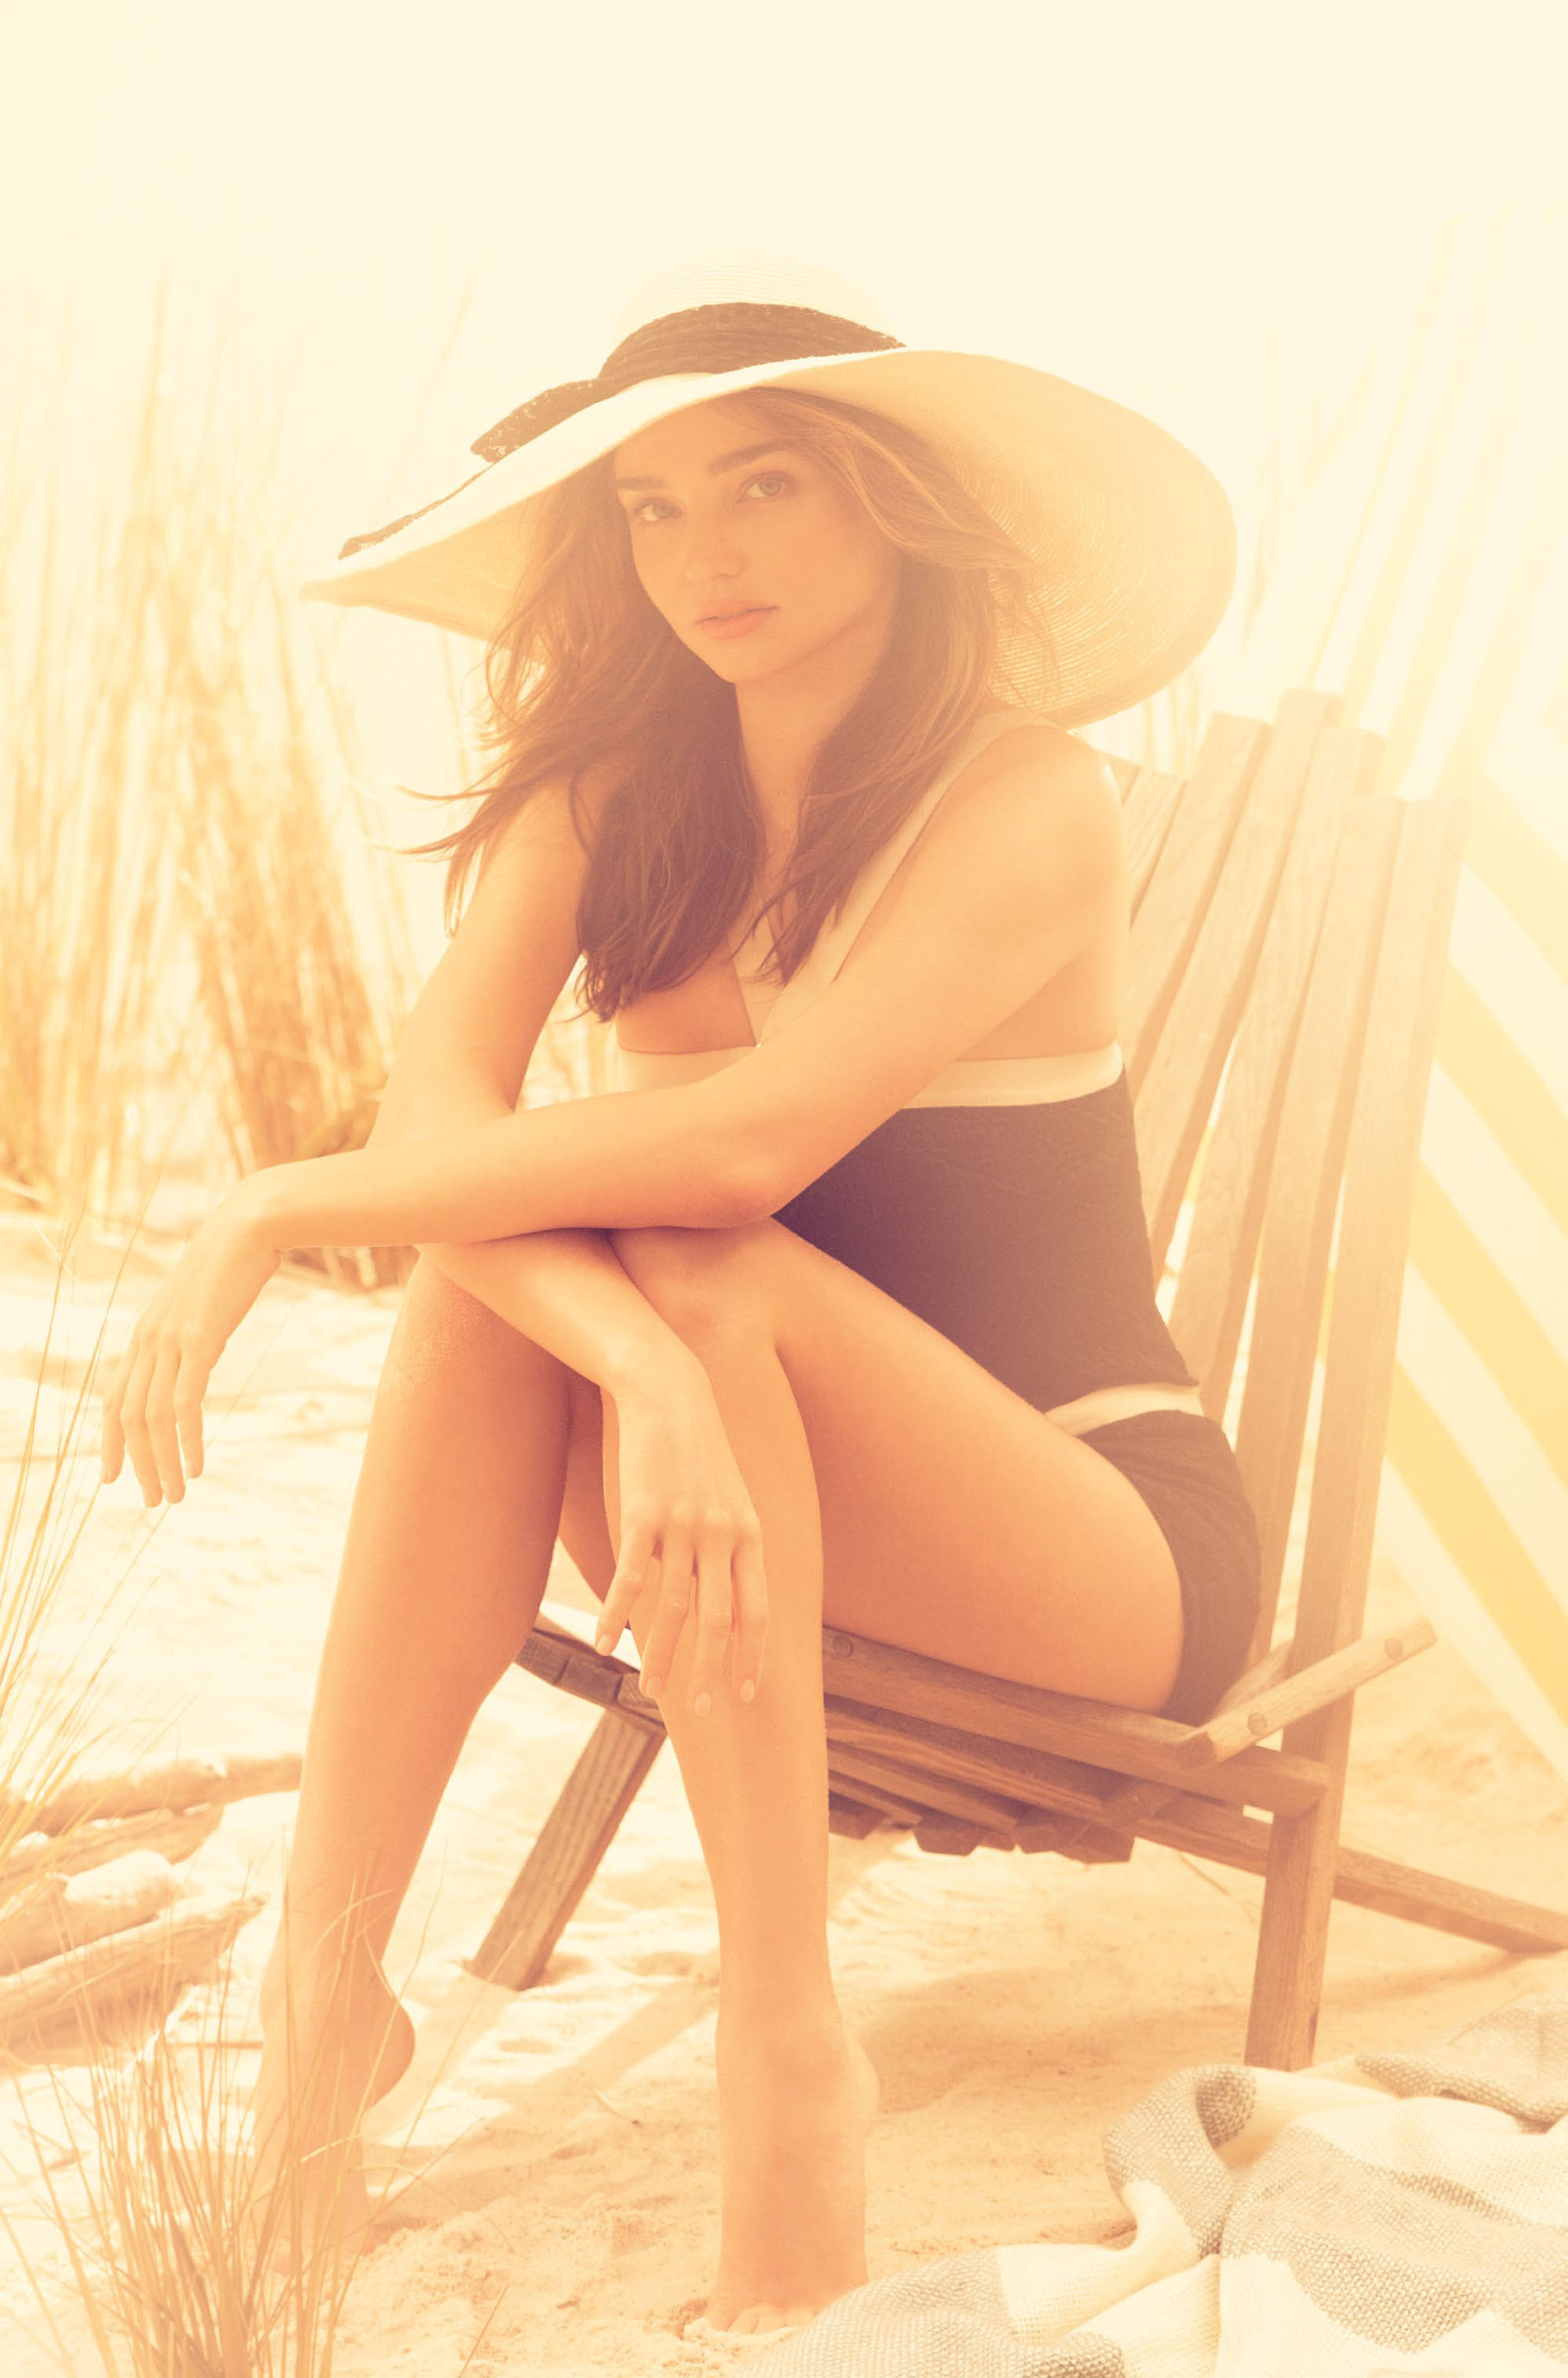 miranda-kerr-by-alexi-lubomirski-for-harper_s-bazaar-uk-june-2014-51